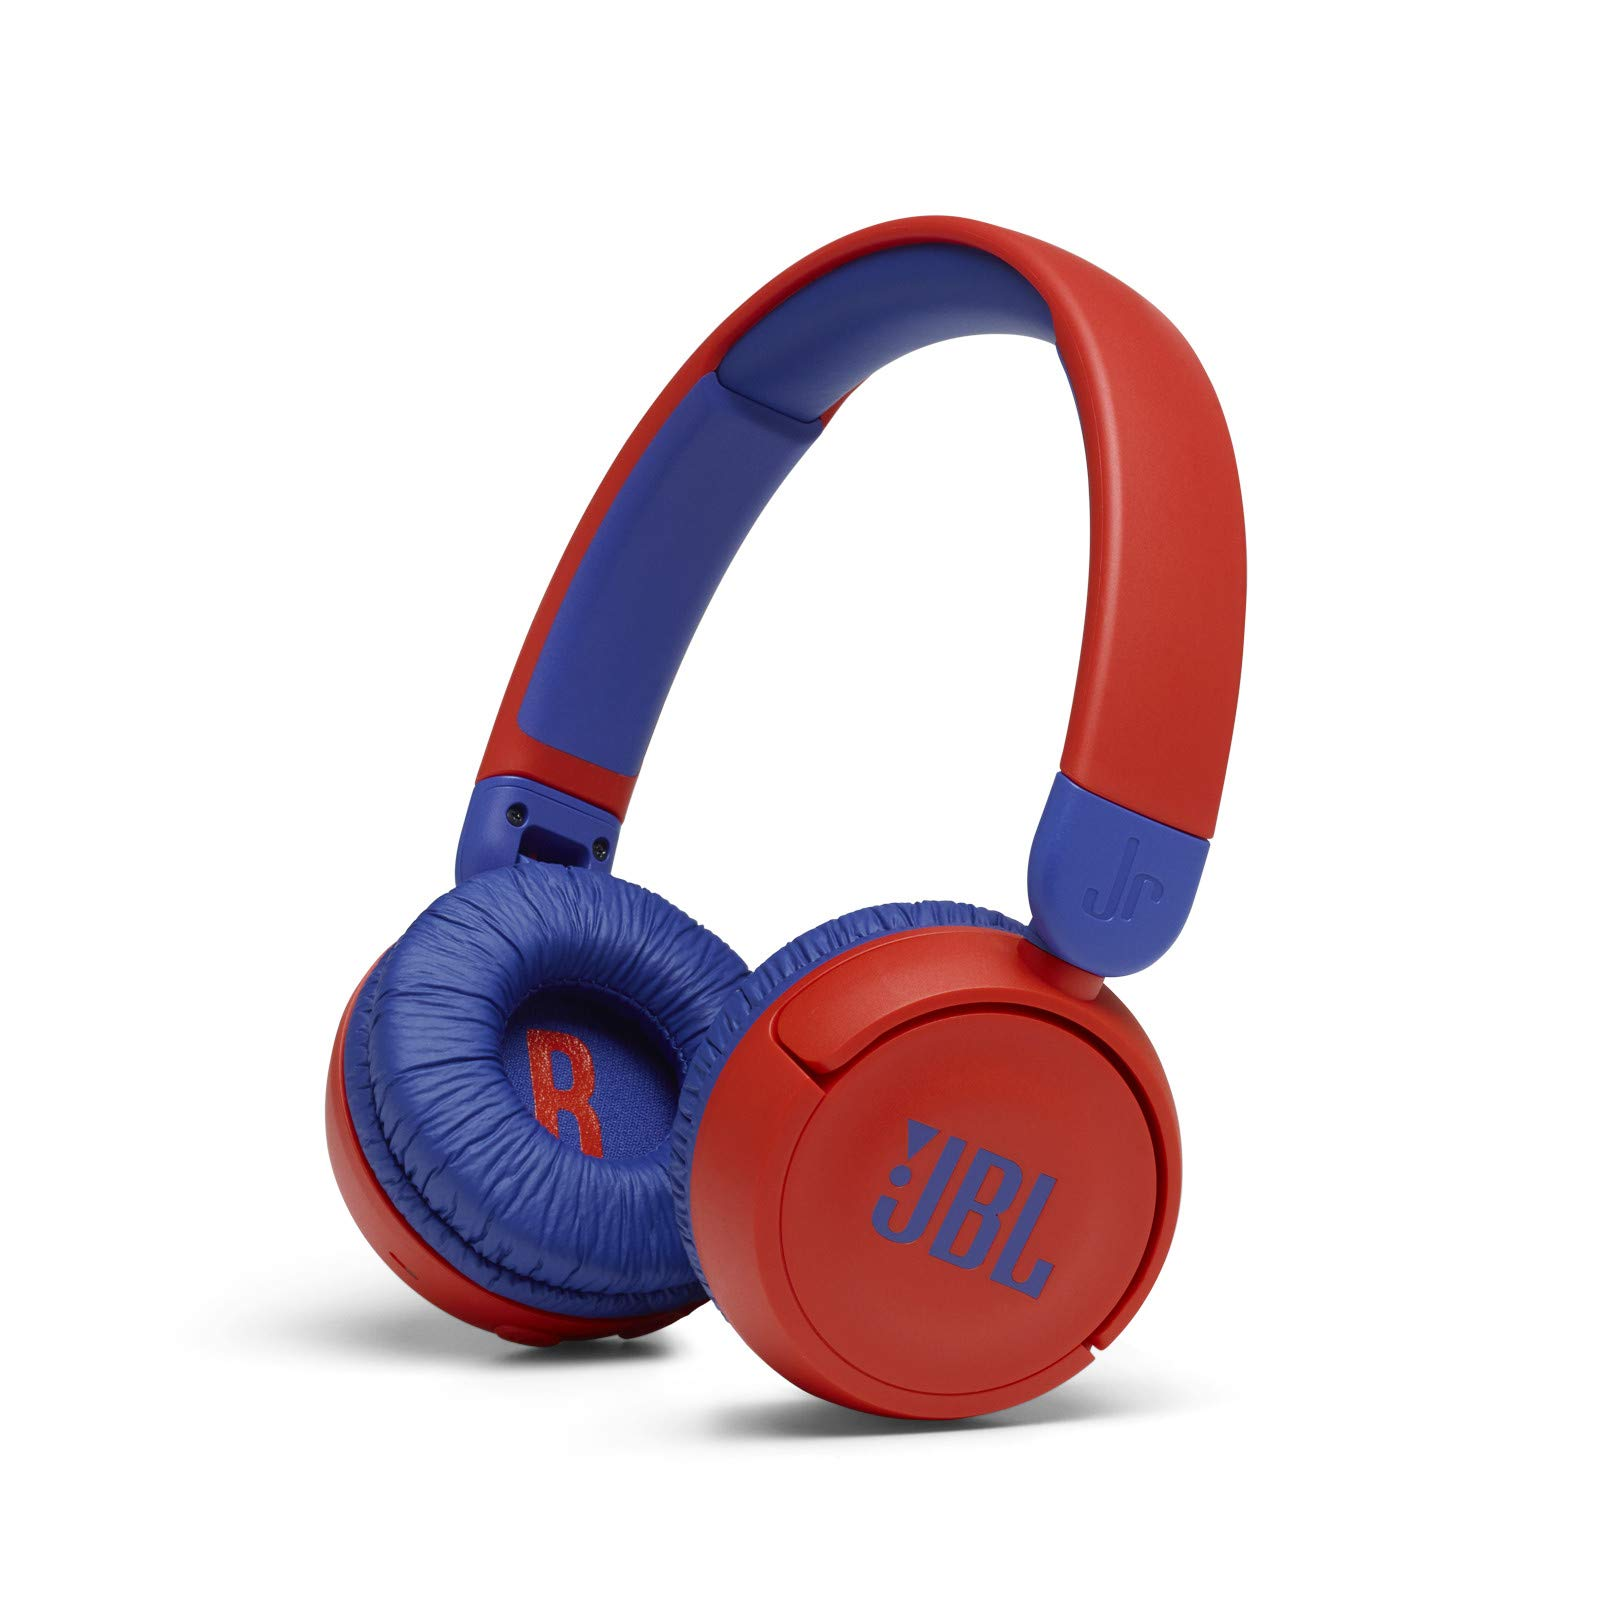 JBL Jr 310BT - Children's over-ear headphones with Bluetooth and built-in microphone, in red